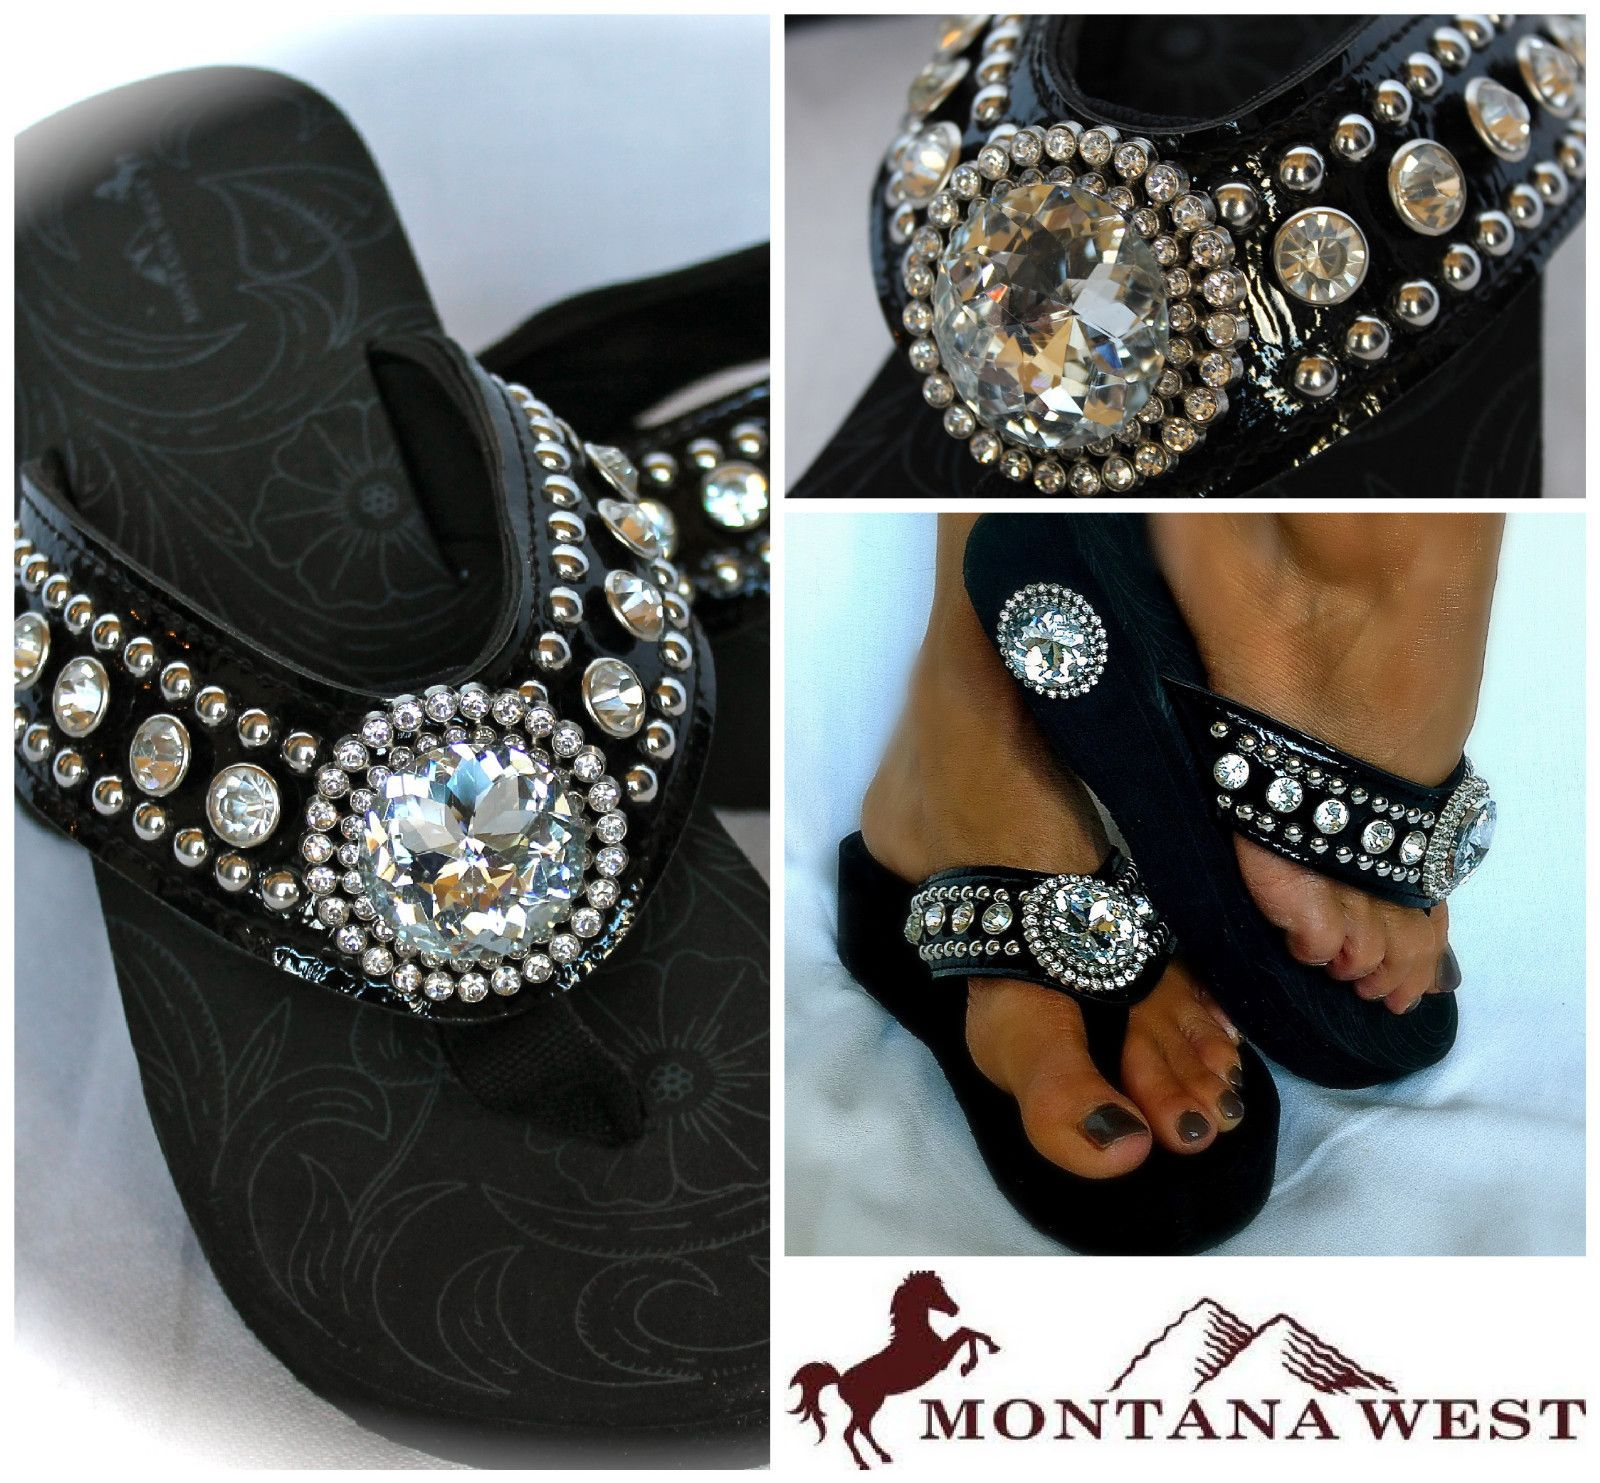 ea0158f4c6857c Montana West New Style Western Bling Flip Flop Wedge Jeweled Black All  Sizes